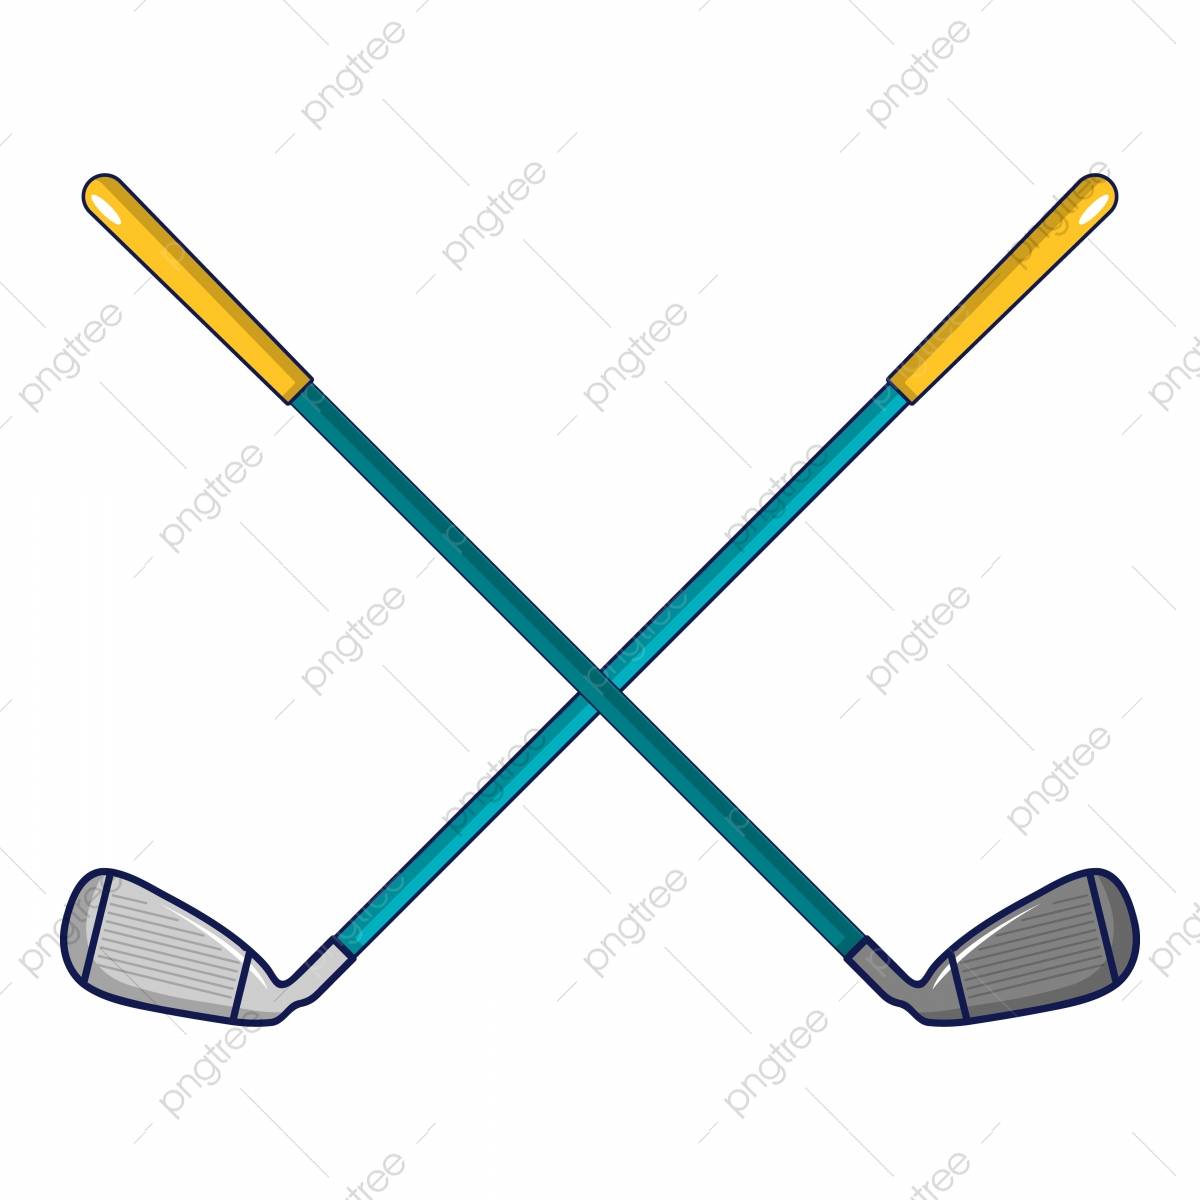 Crossed Golf Clubs Icon Cartoon Style Style Icons Cartoon Icons Golf Icons Png And Vector With Transparent Background For Free Download